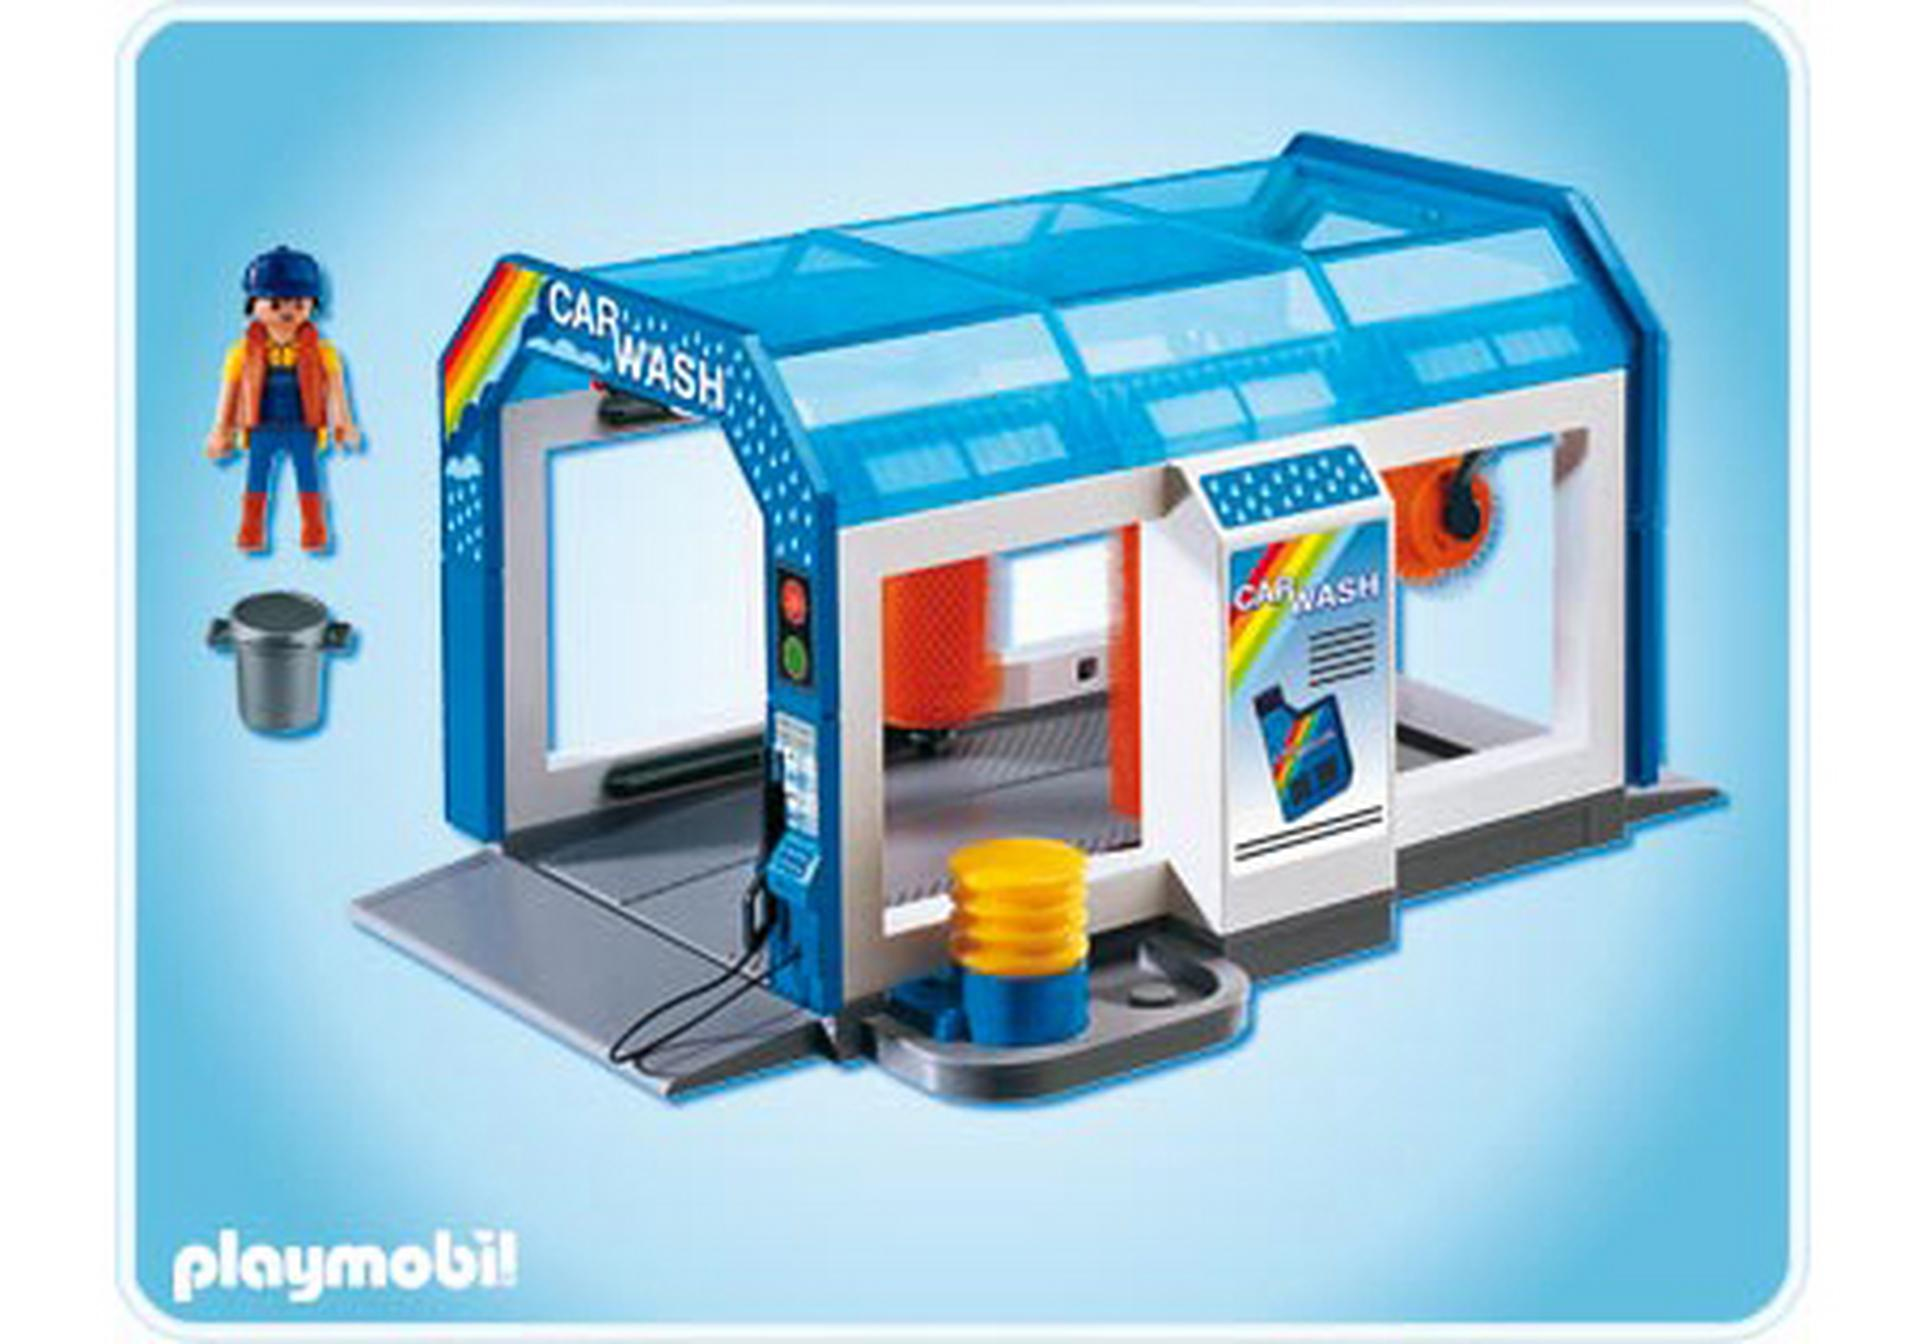 station de lavage voitures 4312 a playmobil france. Black Bedroom Furniture Sets. Home Design Ideas